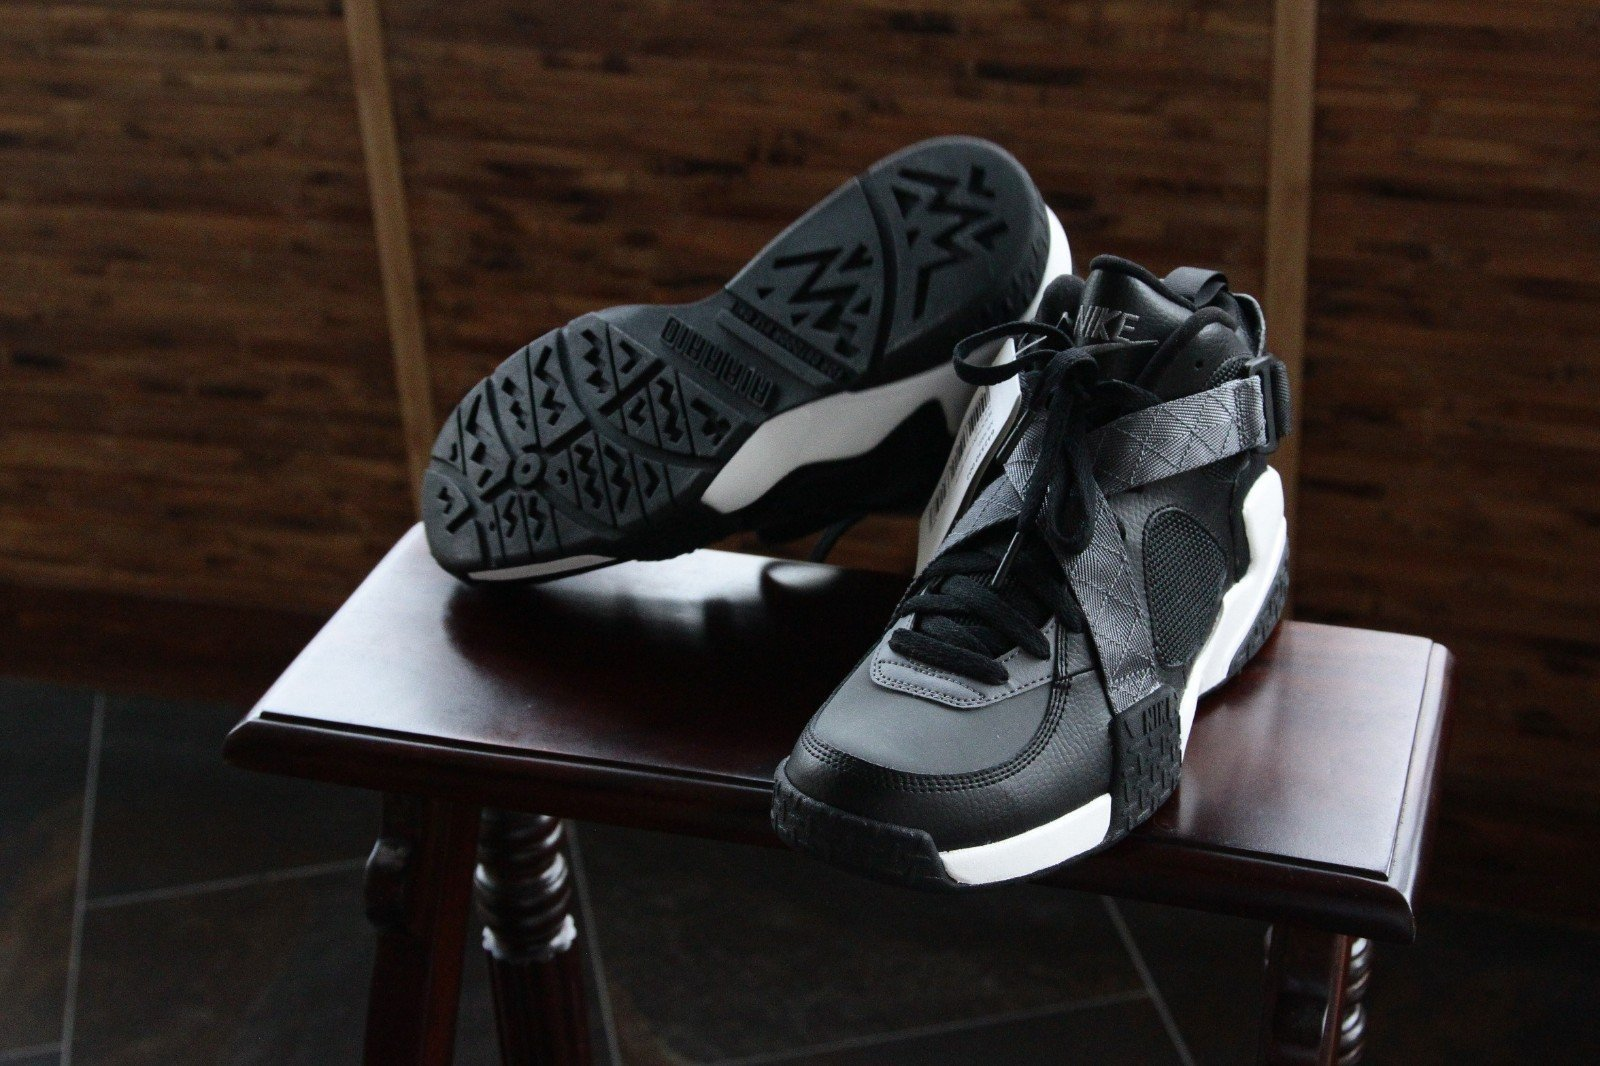 nike-air-raid-black-flint-grey-white-2014-sample-1